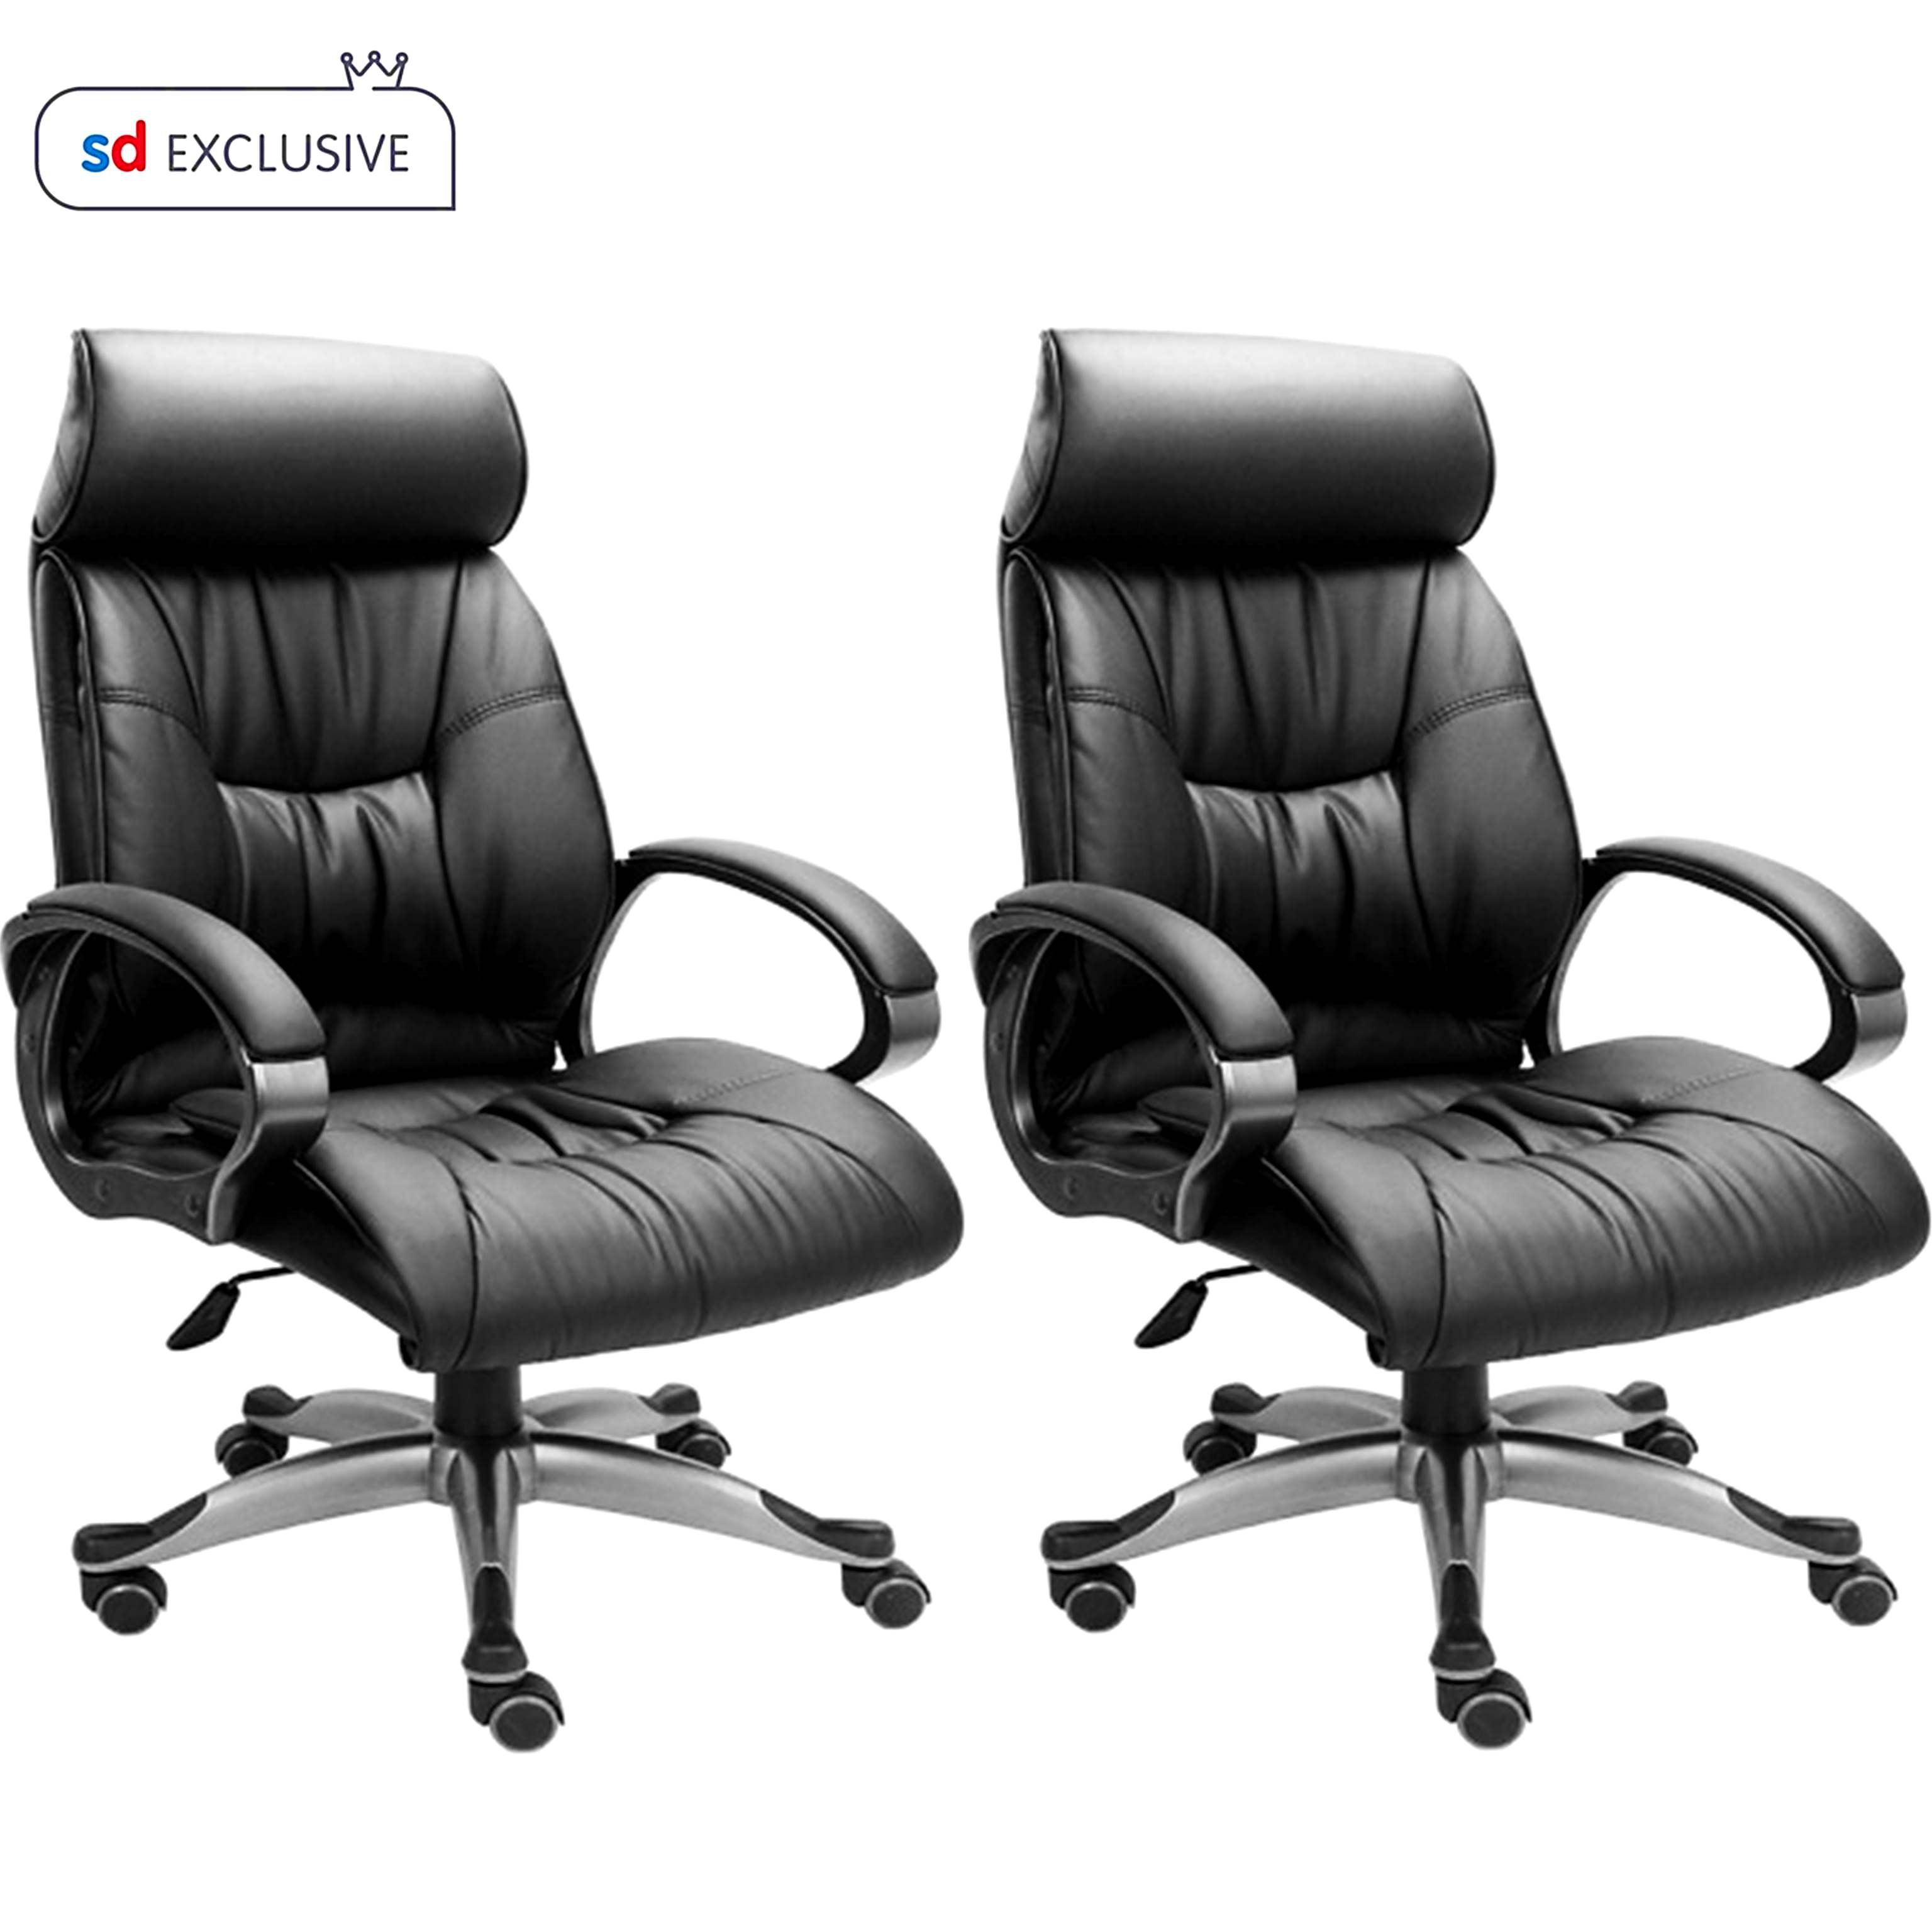 Buy 1 High Back Leatherette fice Chair Get 1 Free Buy